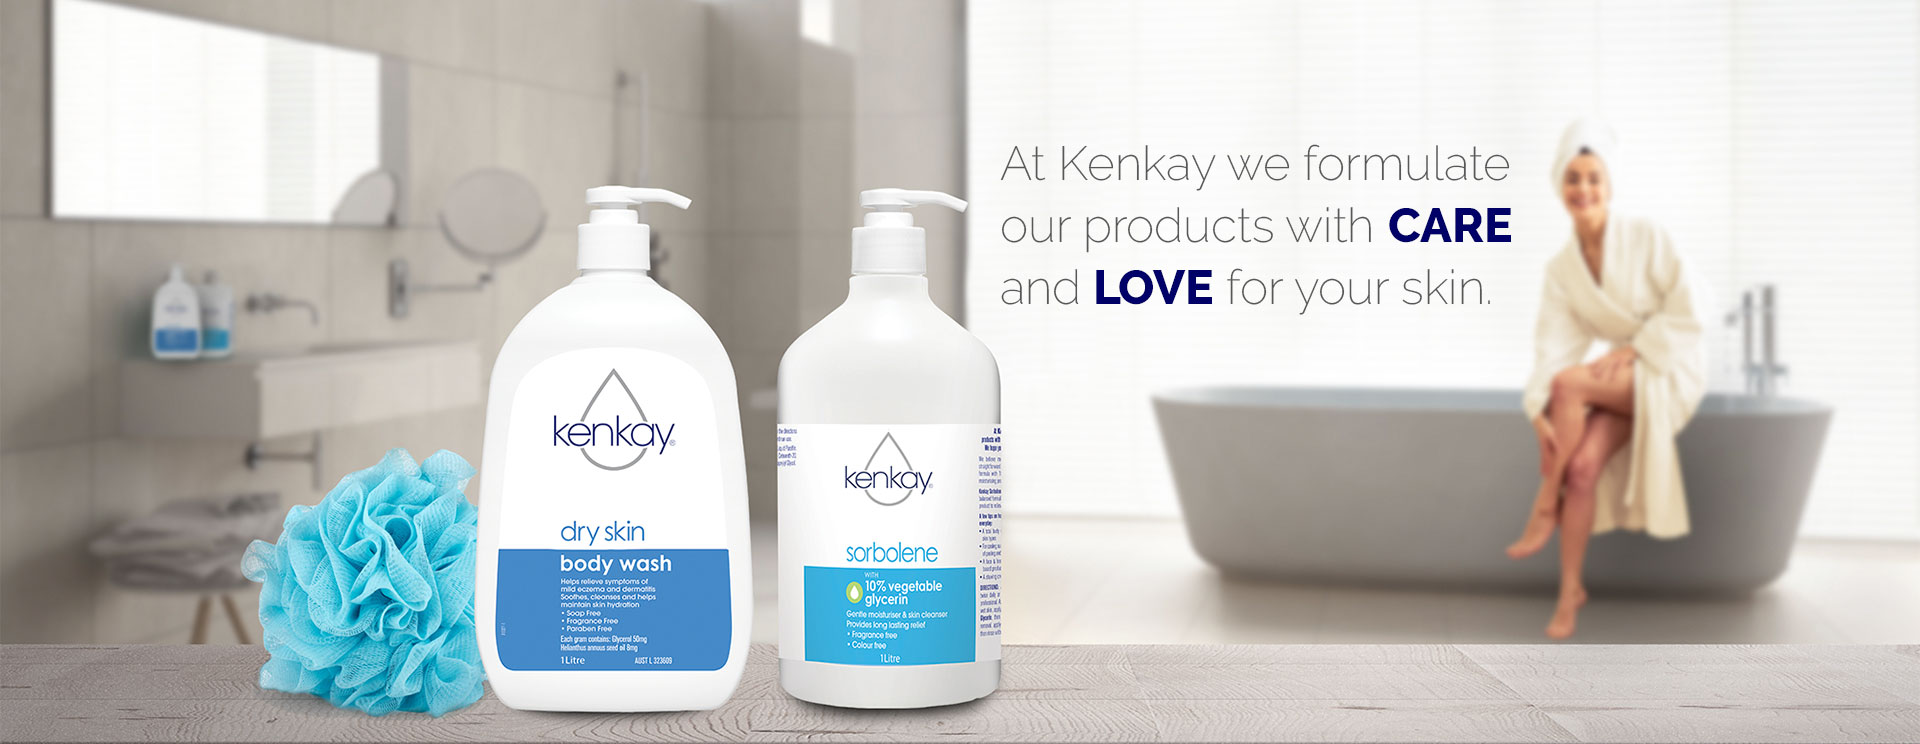 <h1>At Kenkay we formulate our products with <strong>CARE </strong>and <strong>LOVE</strong> for your skin.</h1>